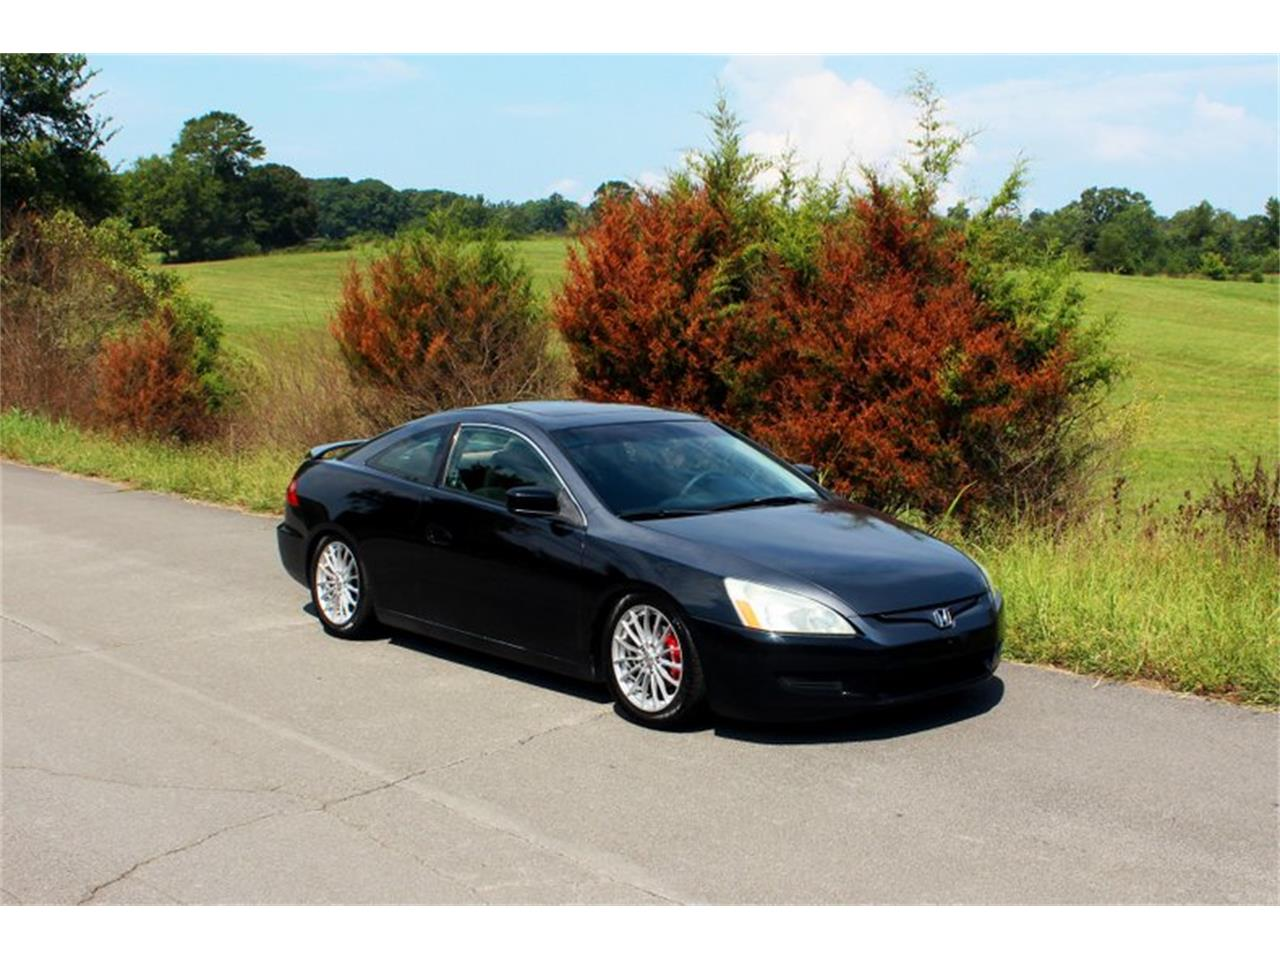 Large Picture of '04 Accord located in Lenoir City Tennessee Offered by Smoky Mountain Traders - OH0M